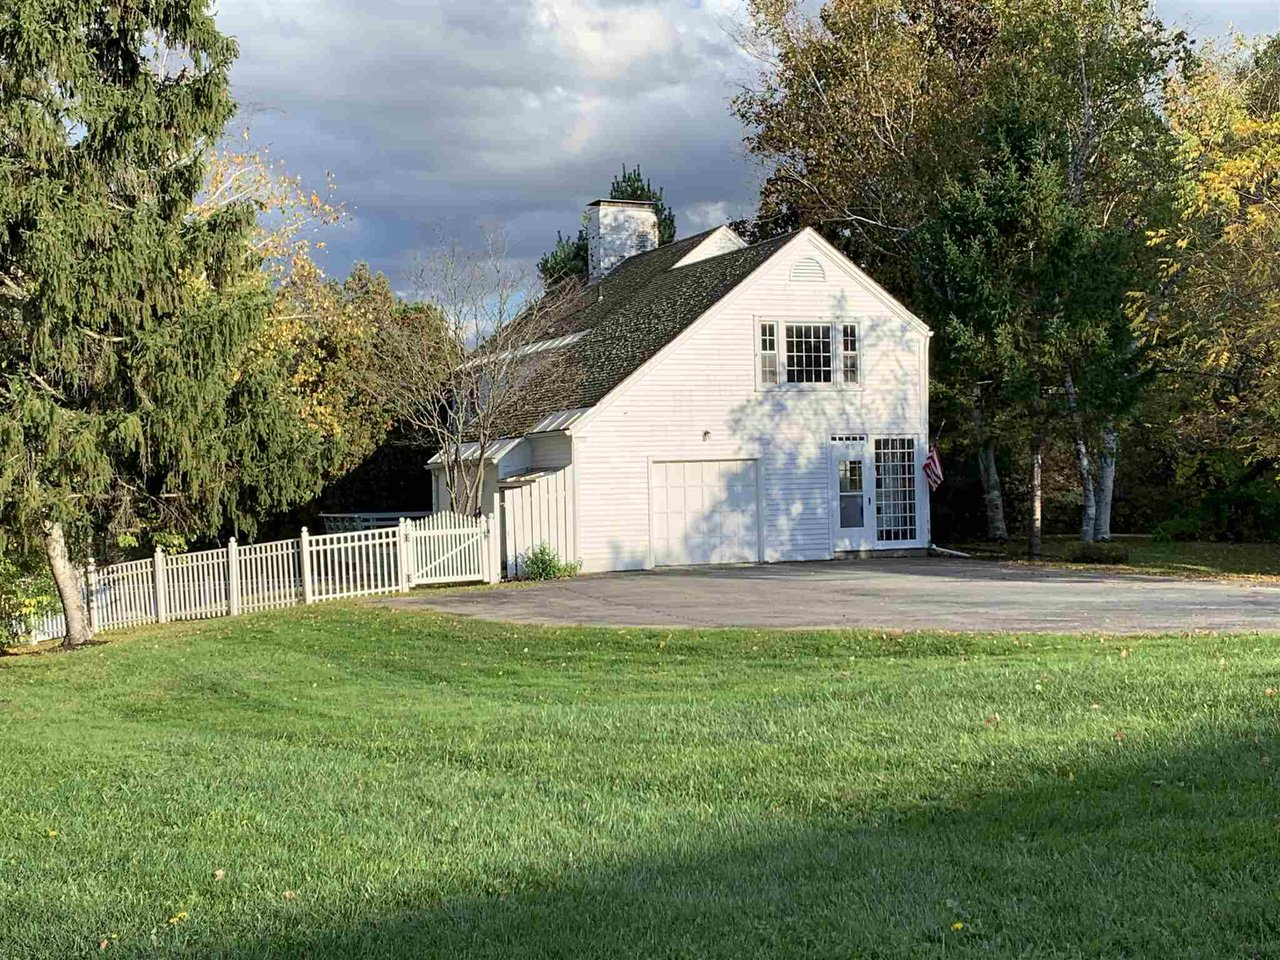 Sold property in Middlebury